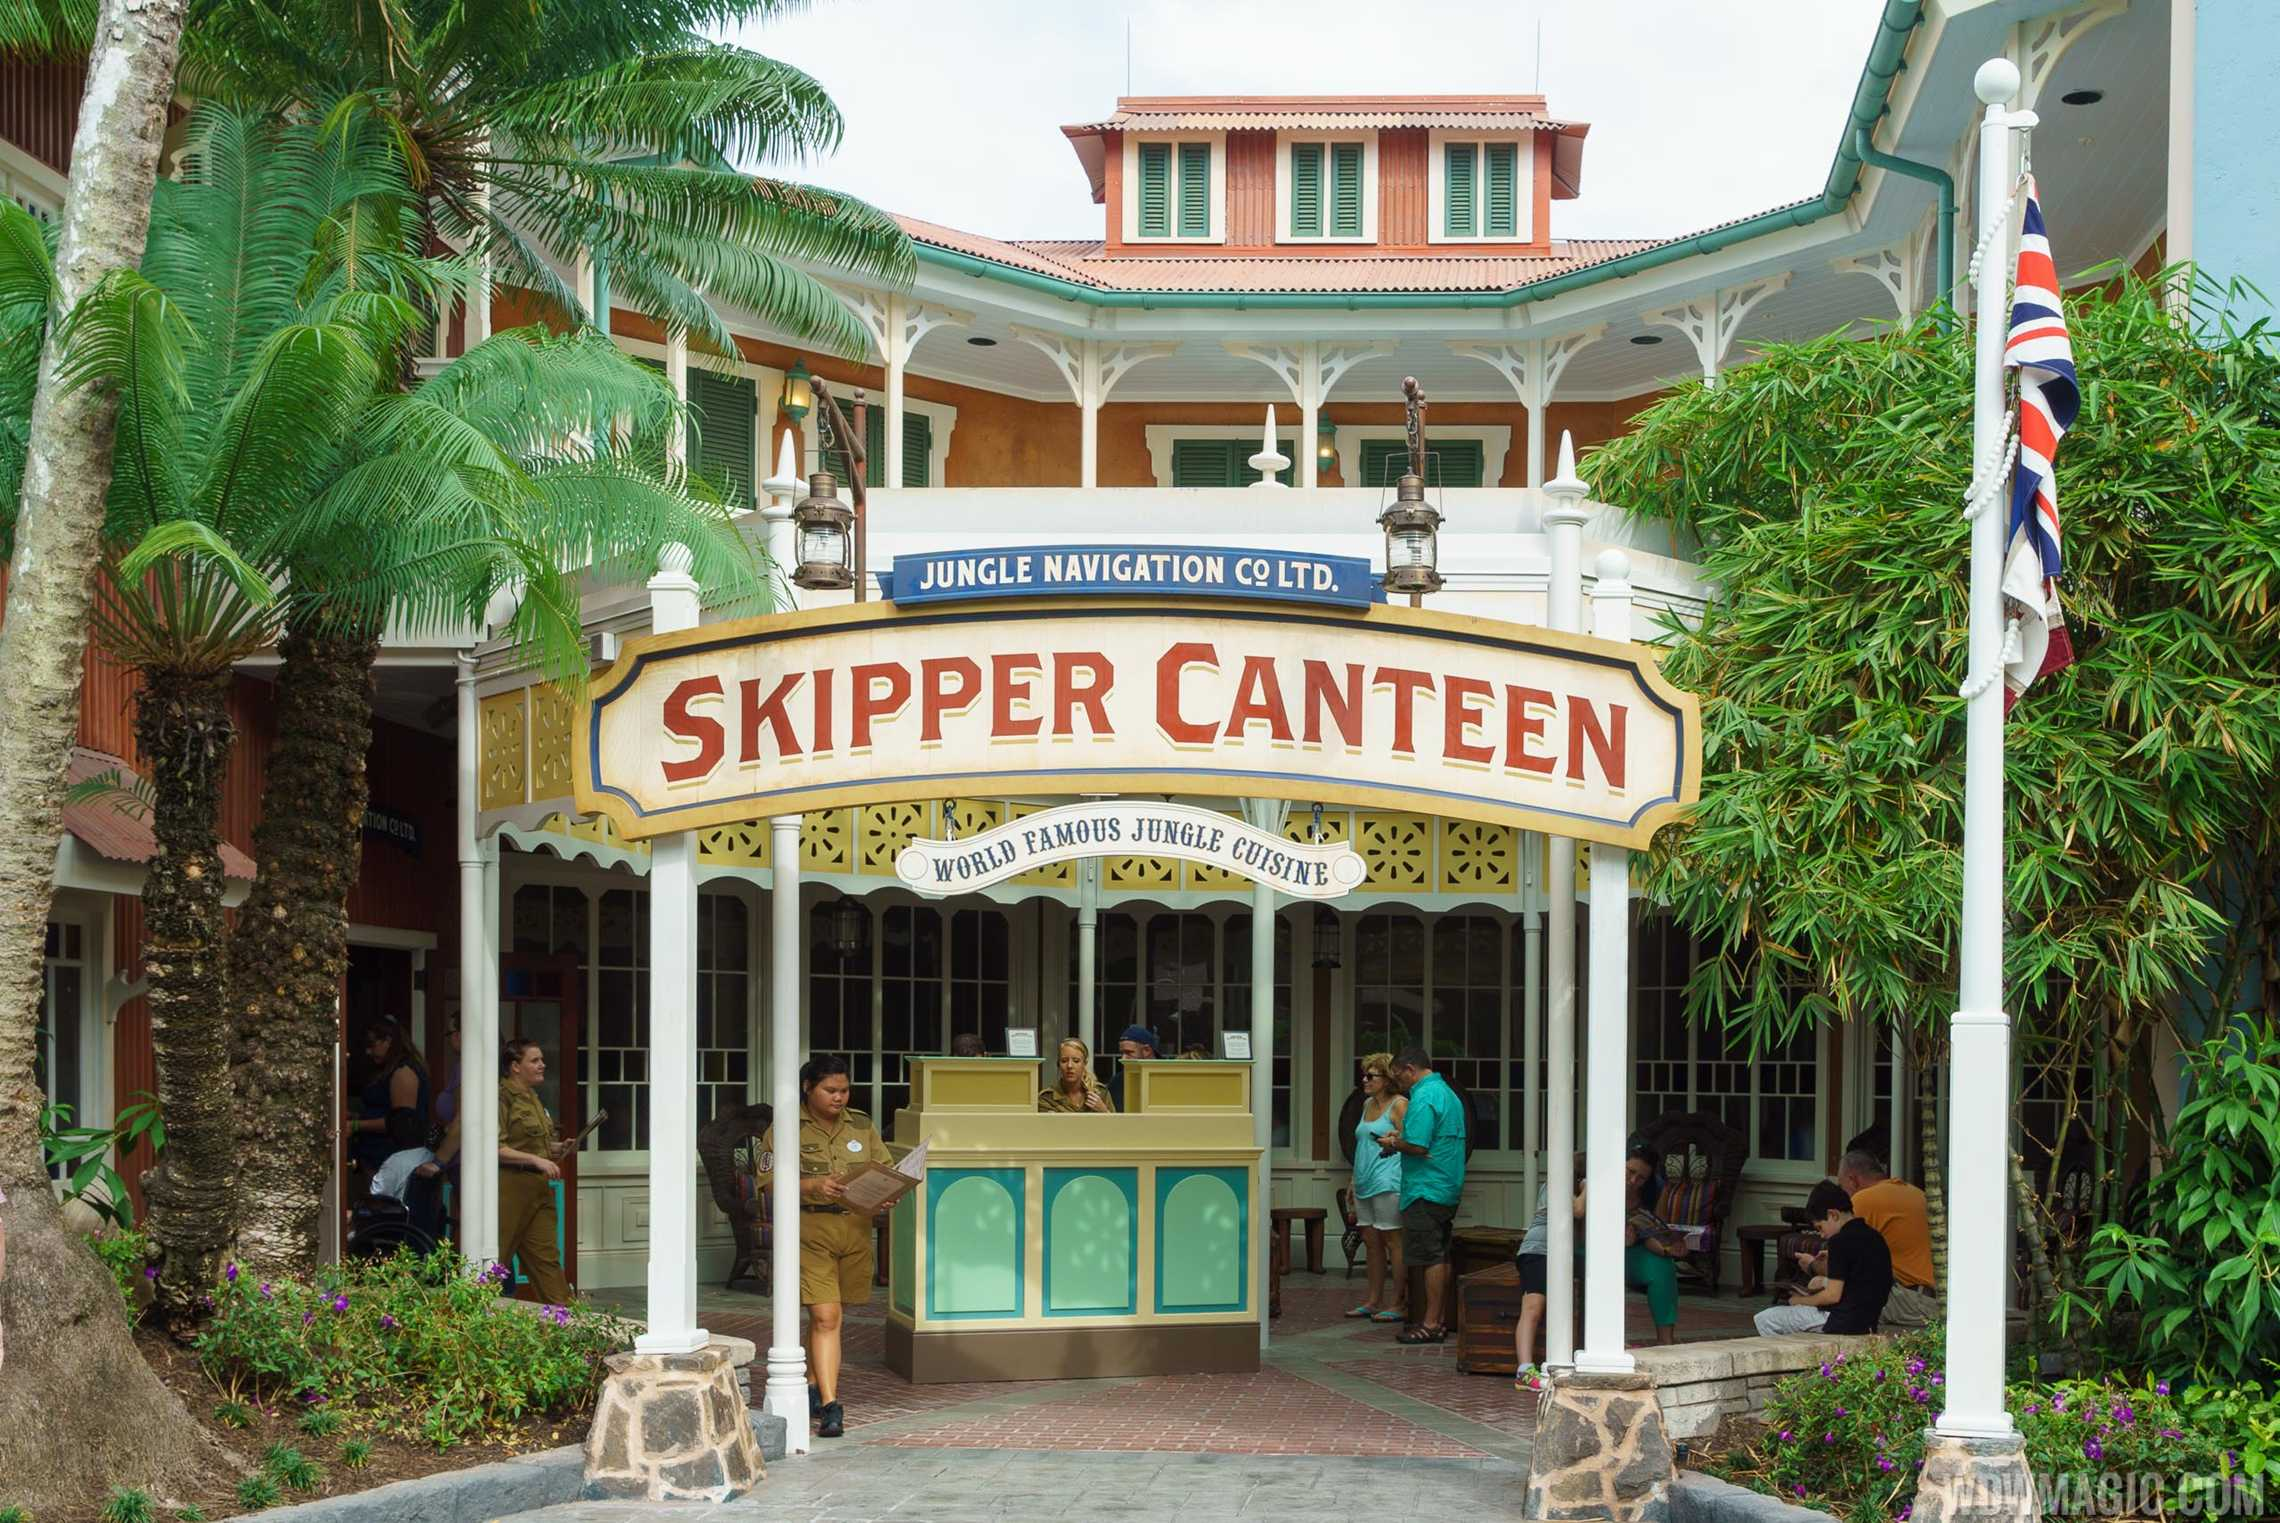 Jungle Cruise Skipper Canteen - Entrance